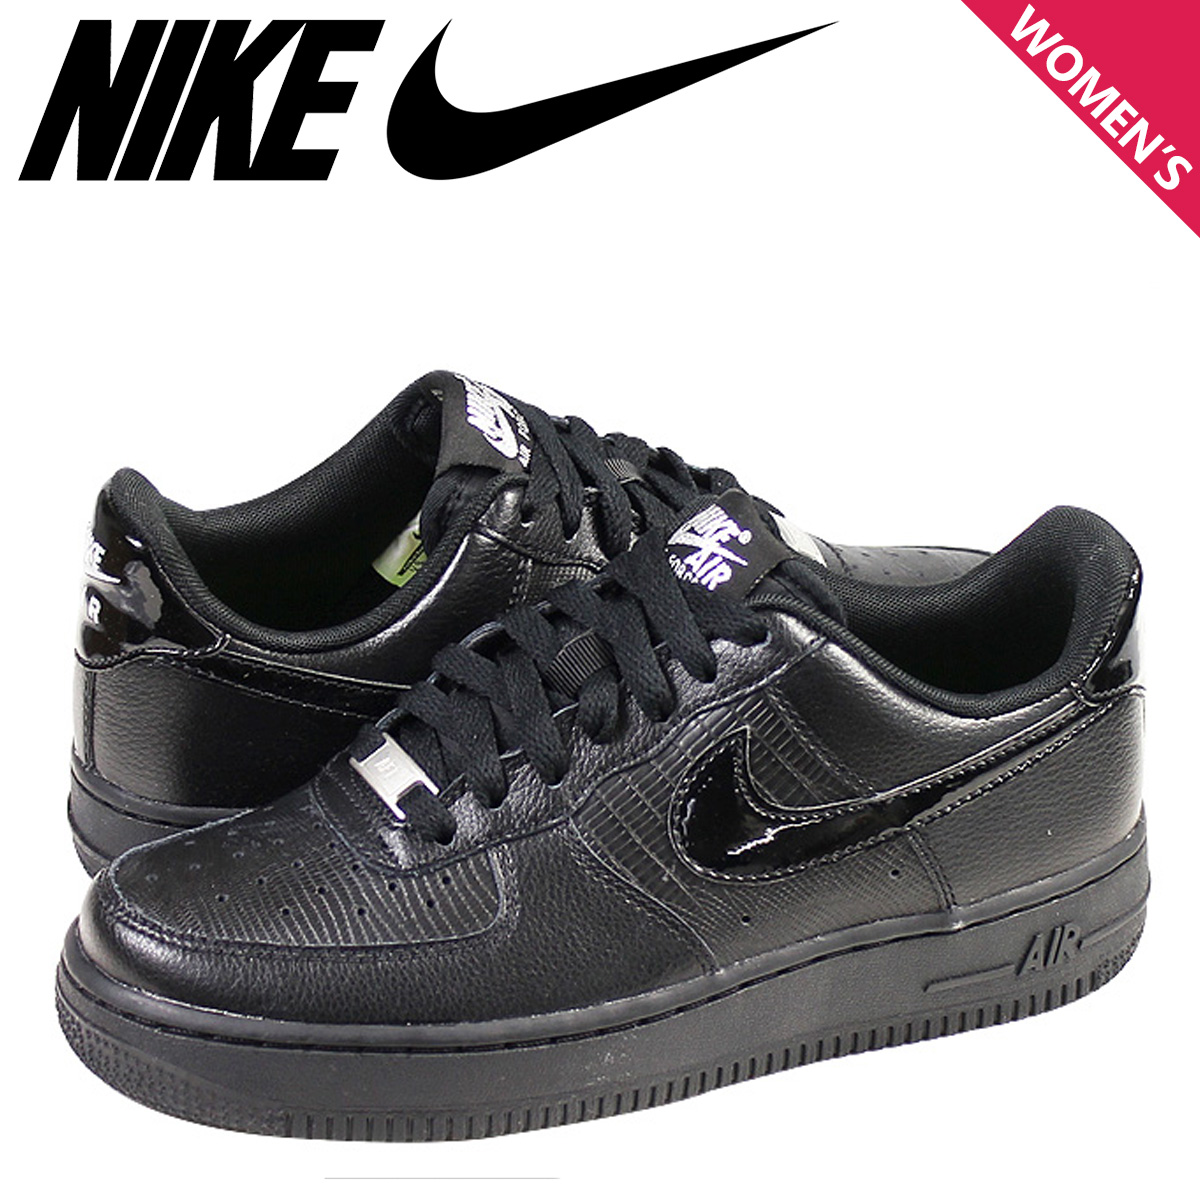 Nike NIKE Womens WMNS AIR FORCE 1 07 LE sneakers air force 1 07 limited  edition leather mens 315115-037 BLACK BLACK black  11   7 new in stock    regular  89939db9fab1